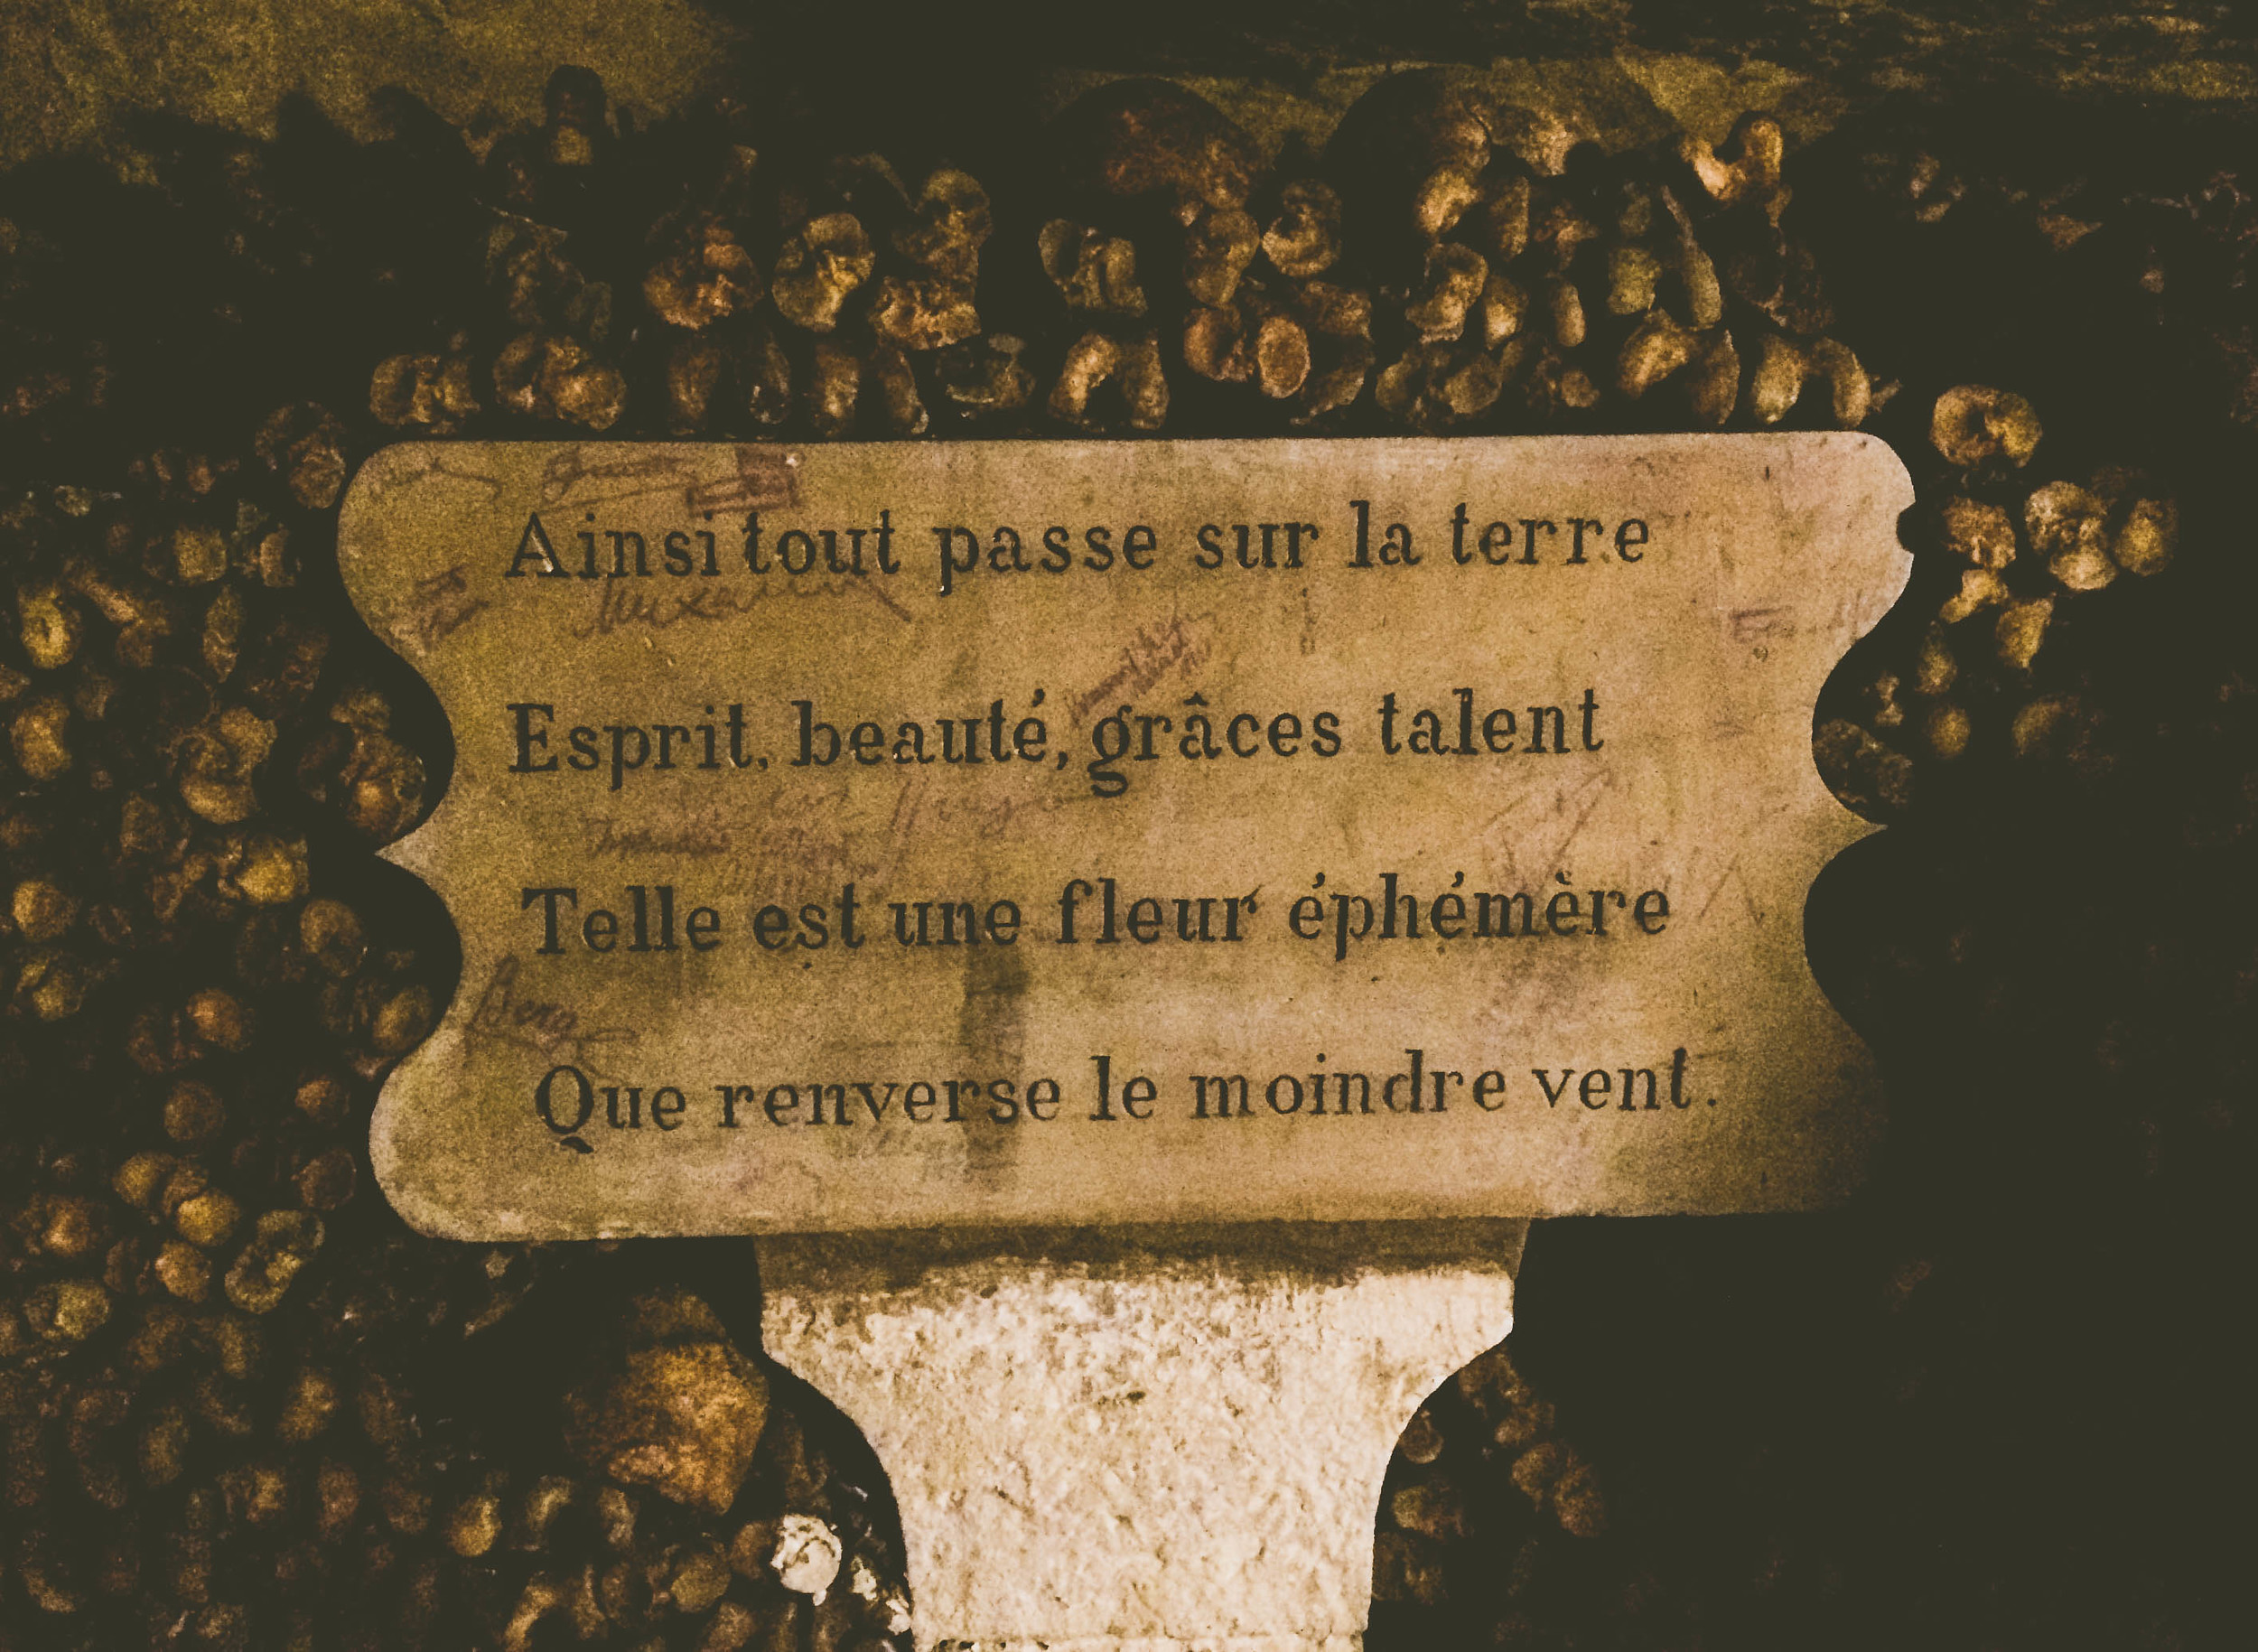 A French poem in the Catacombs.